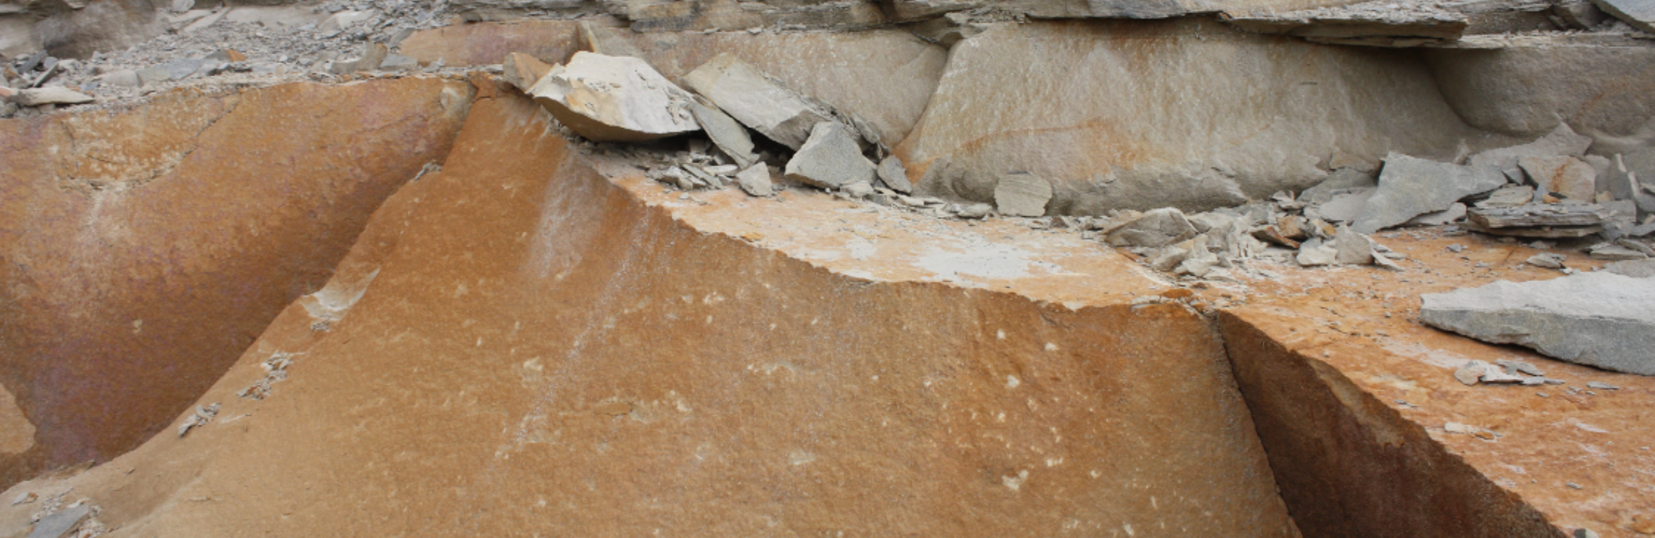 Sourcing Indigenous Stone